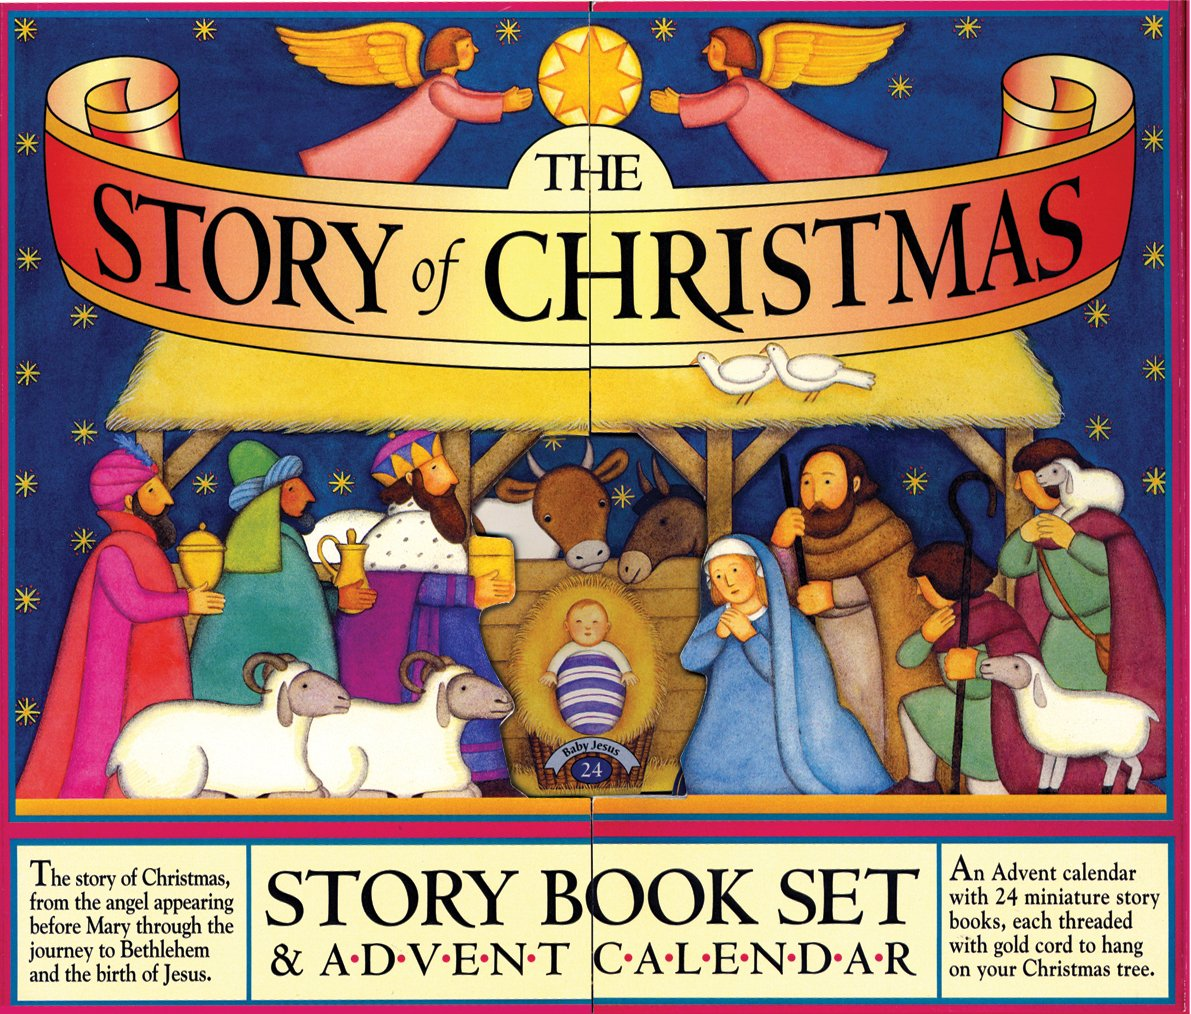 Amazon.com: The Story of Christmas Story Book Set and Advent ...